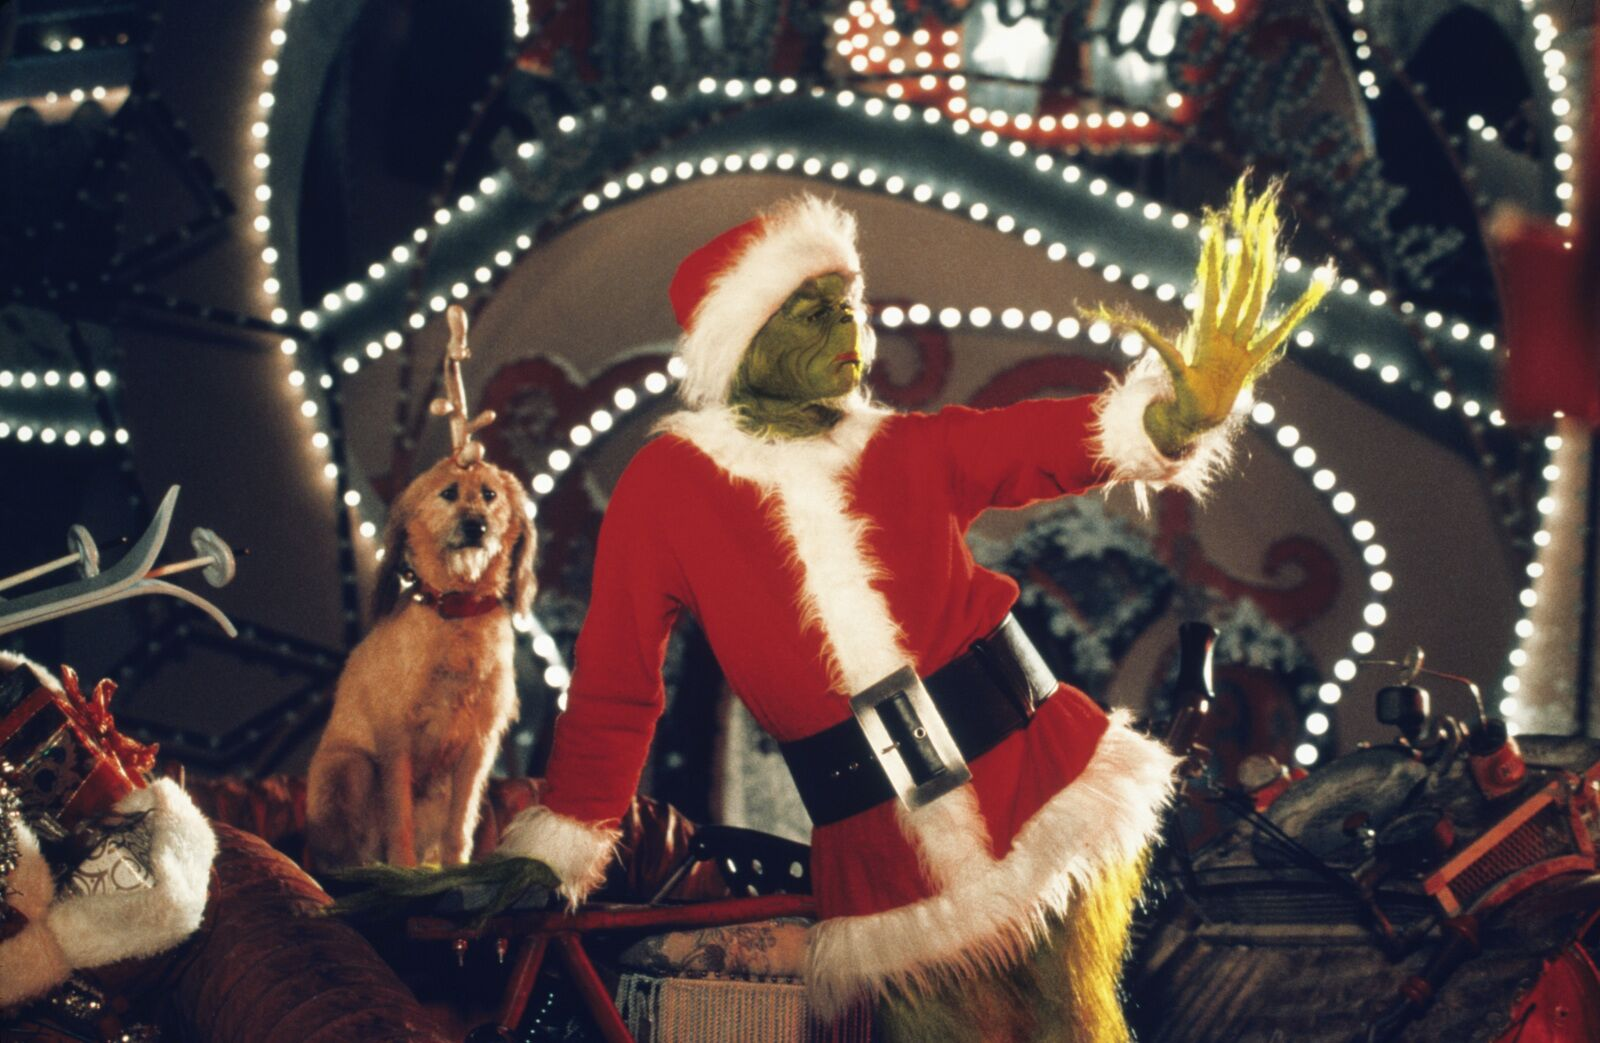 Where can you stream How the Grinch Stole Christmas for the holidays?